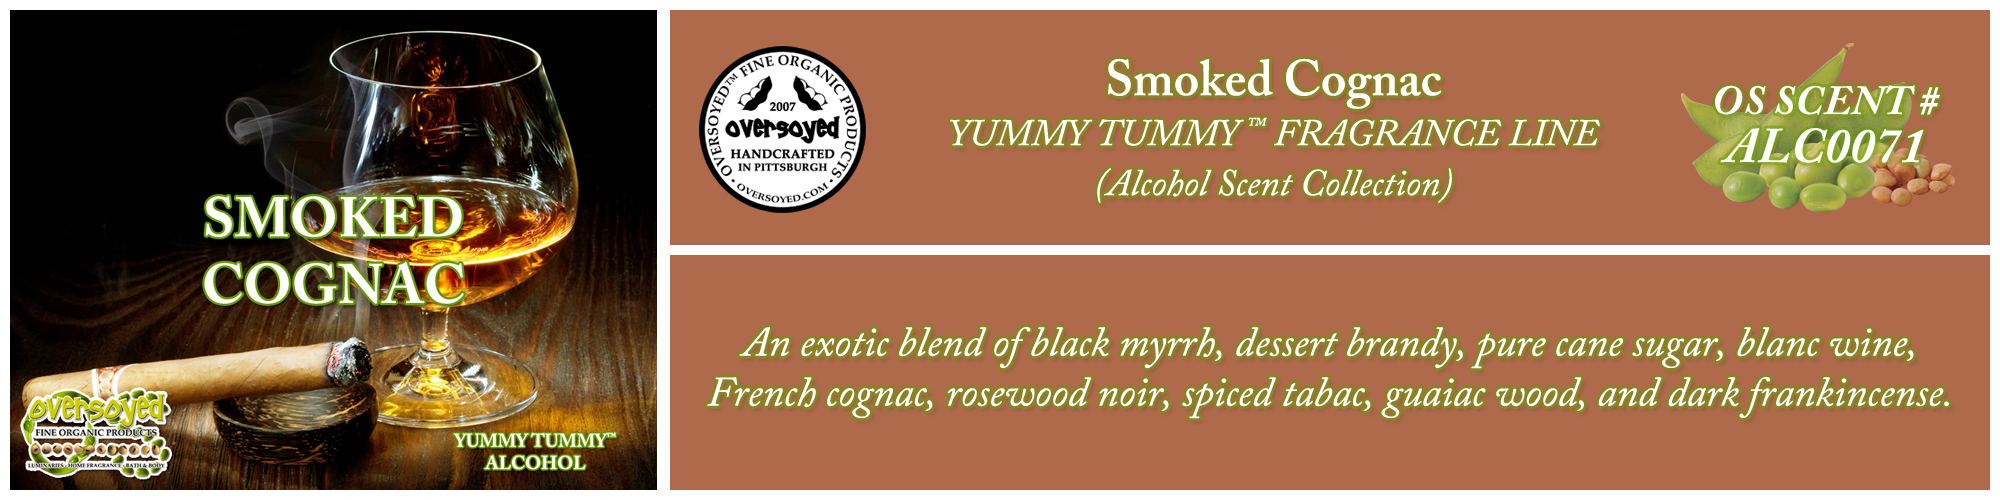 Smoked Cognac Handcrafted Products Collection